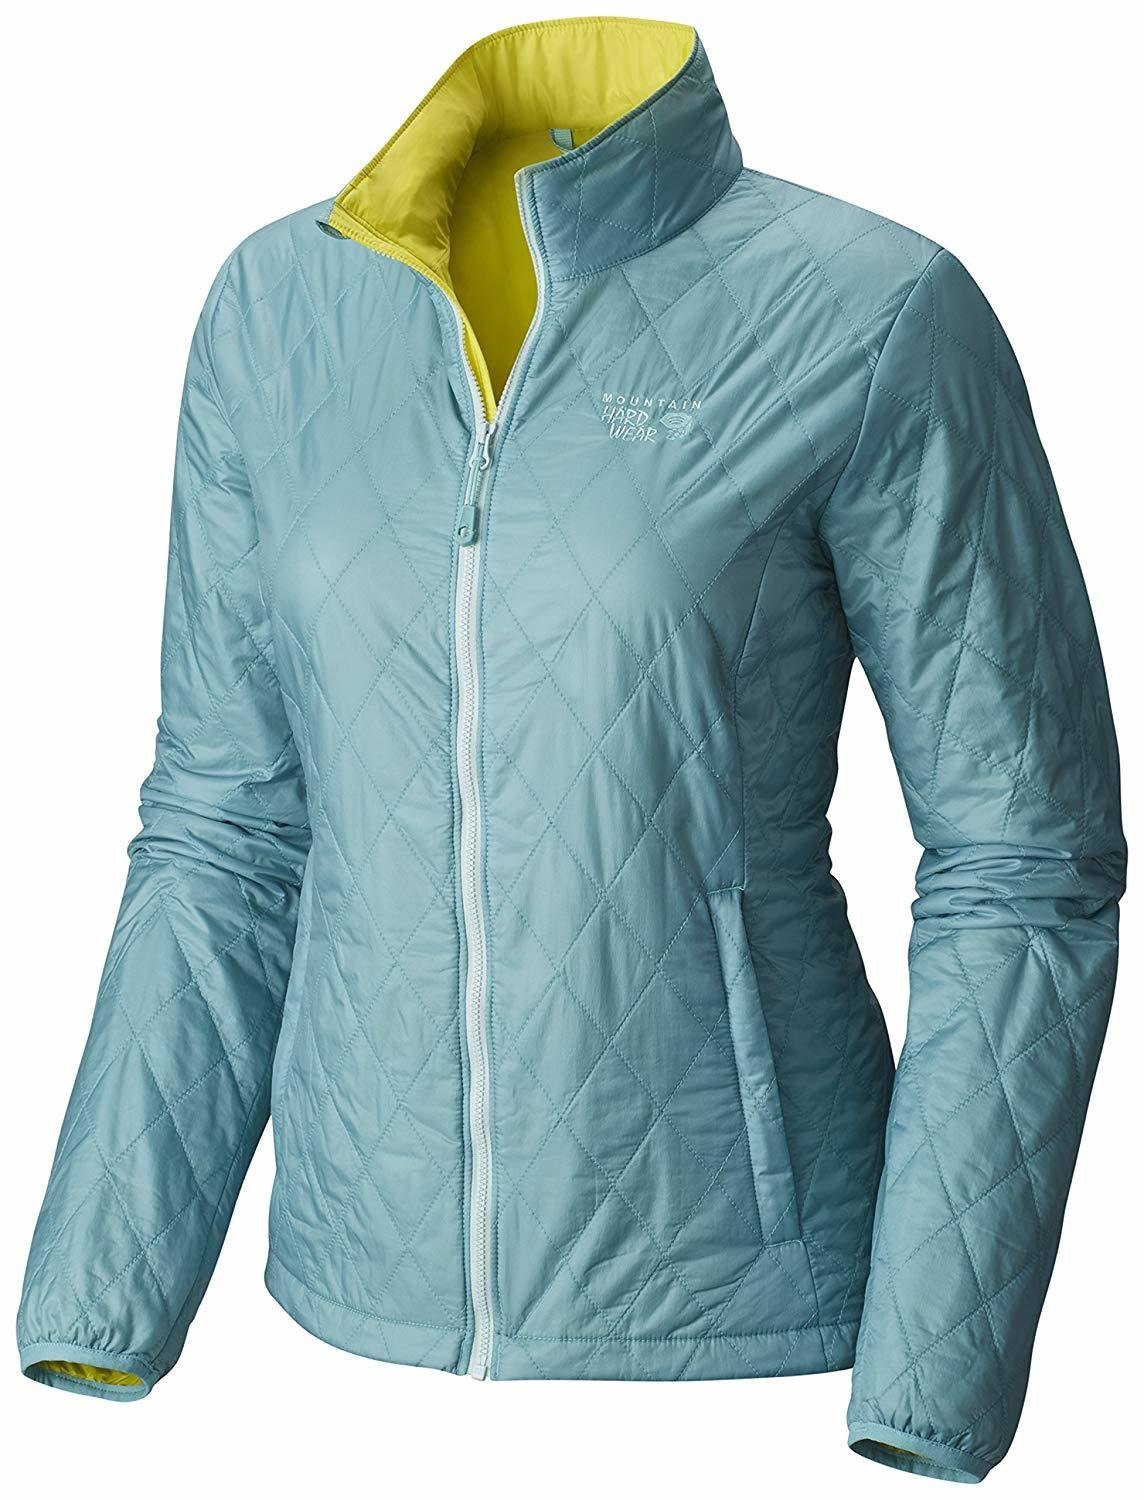 Mountain Hardwear Thermostatic Synthetic Jacket - Women's XSmall